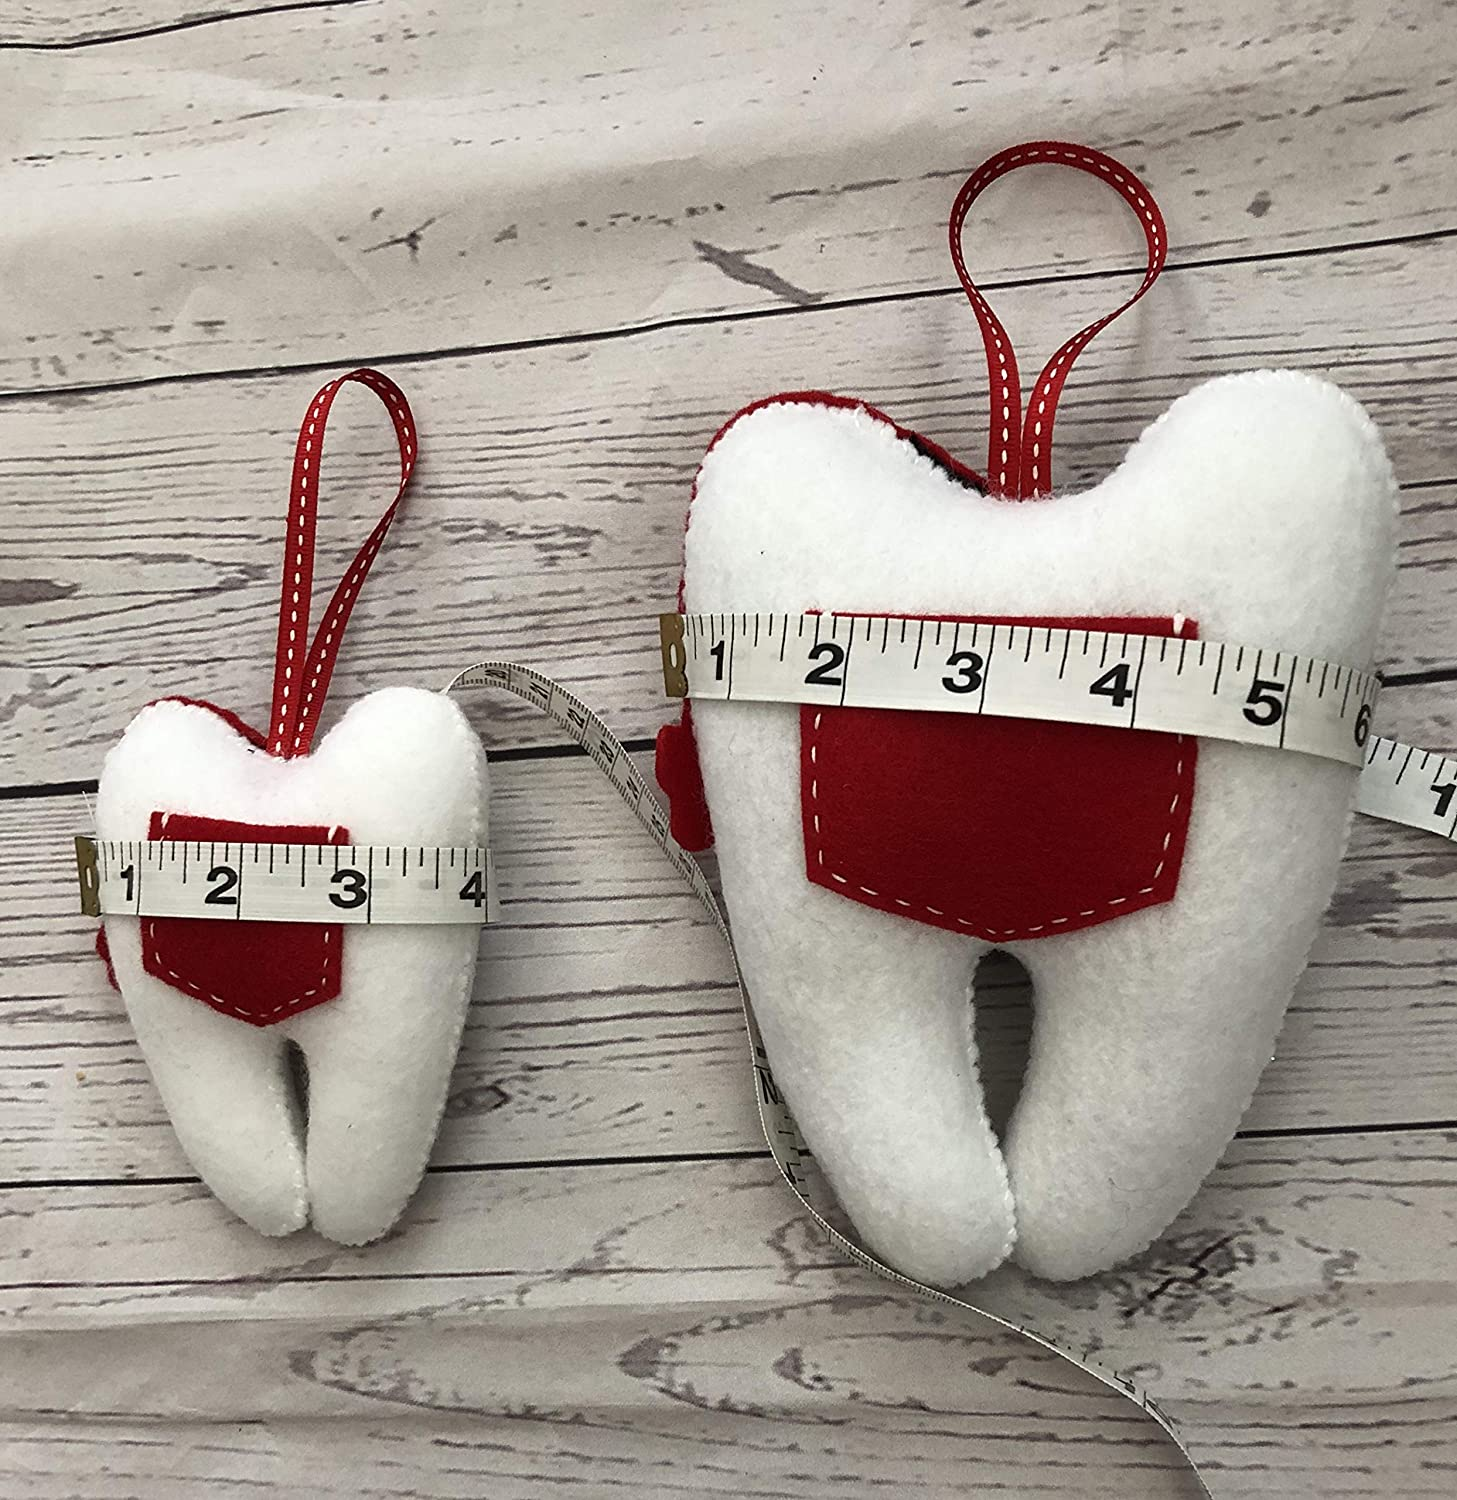 White and Red Tooth Bag Pirate Stuffed Tooth with pocket 100 /% Handmade Neverland Pirates Decorative Pillow Large or small available Tooth Fairy Pillow | For boys and Girls 2 Piece set